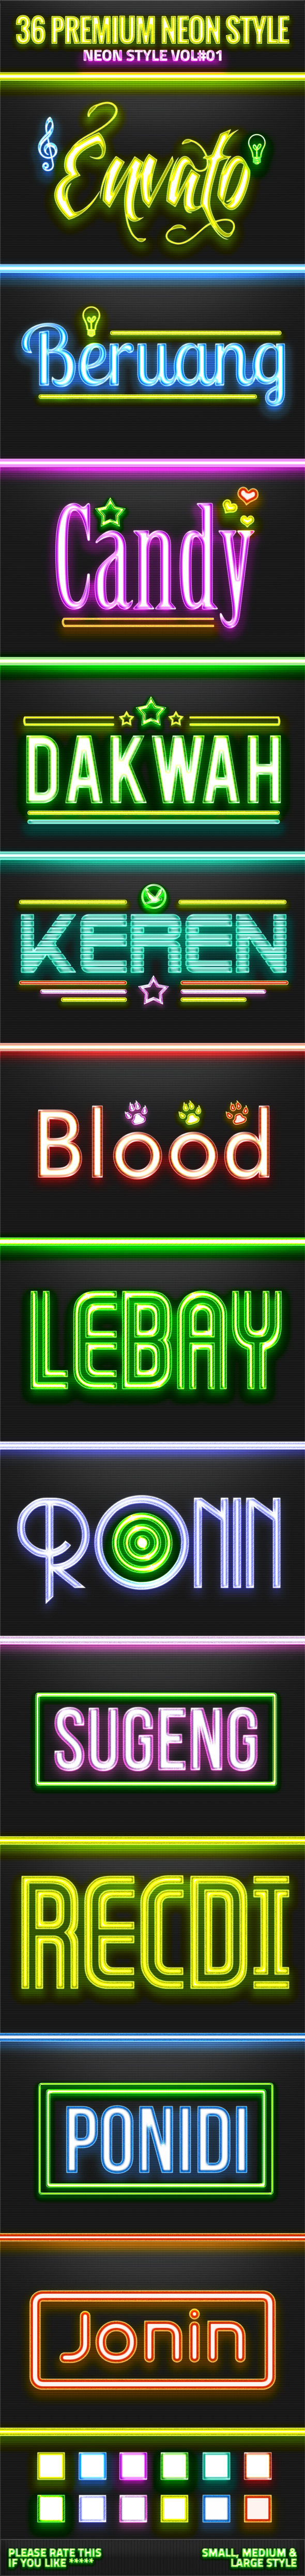 36 Neon Style V01 - Text Effects Styles